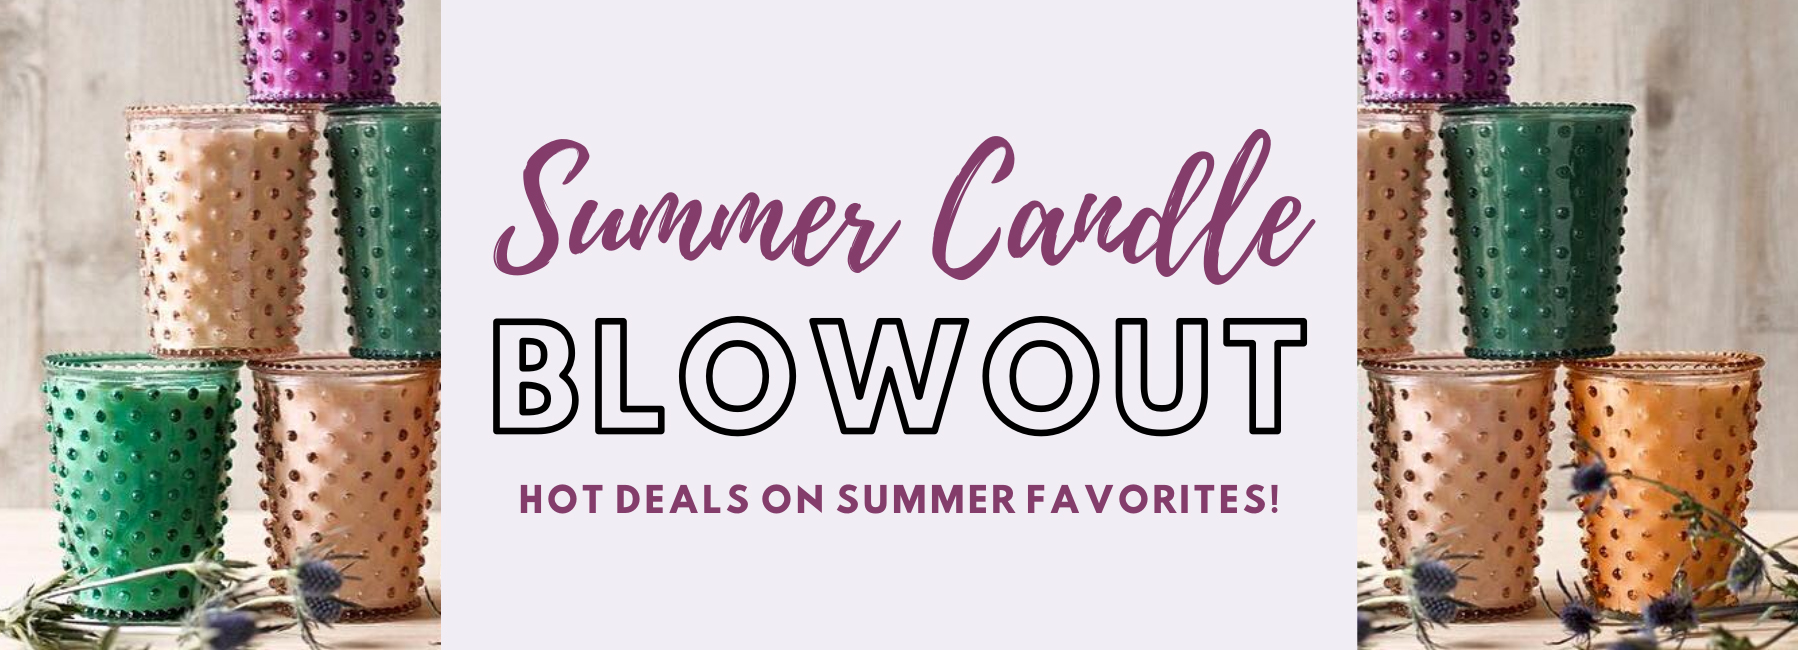 Summer Candle Blowout